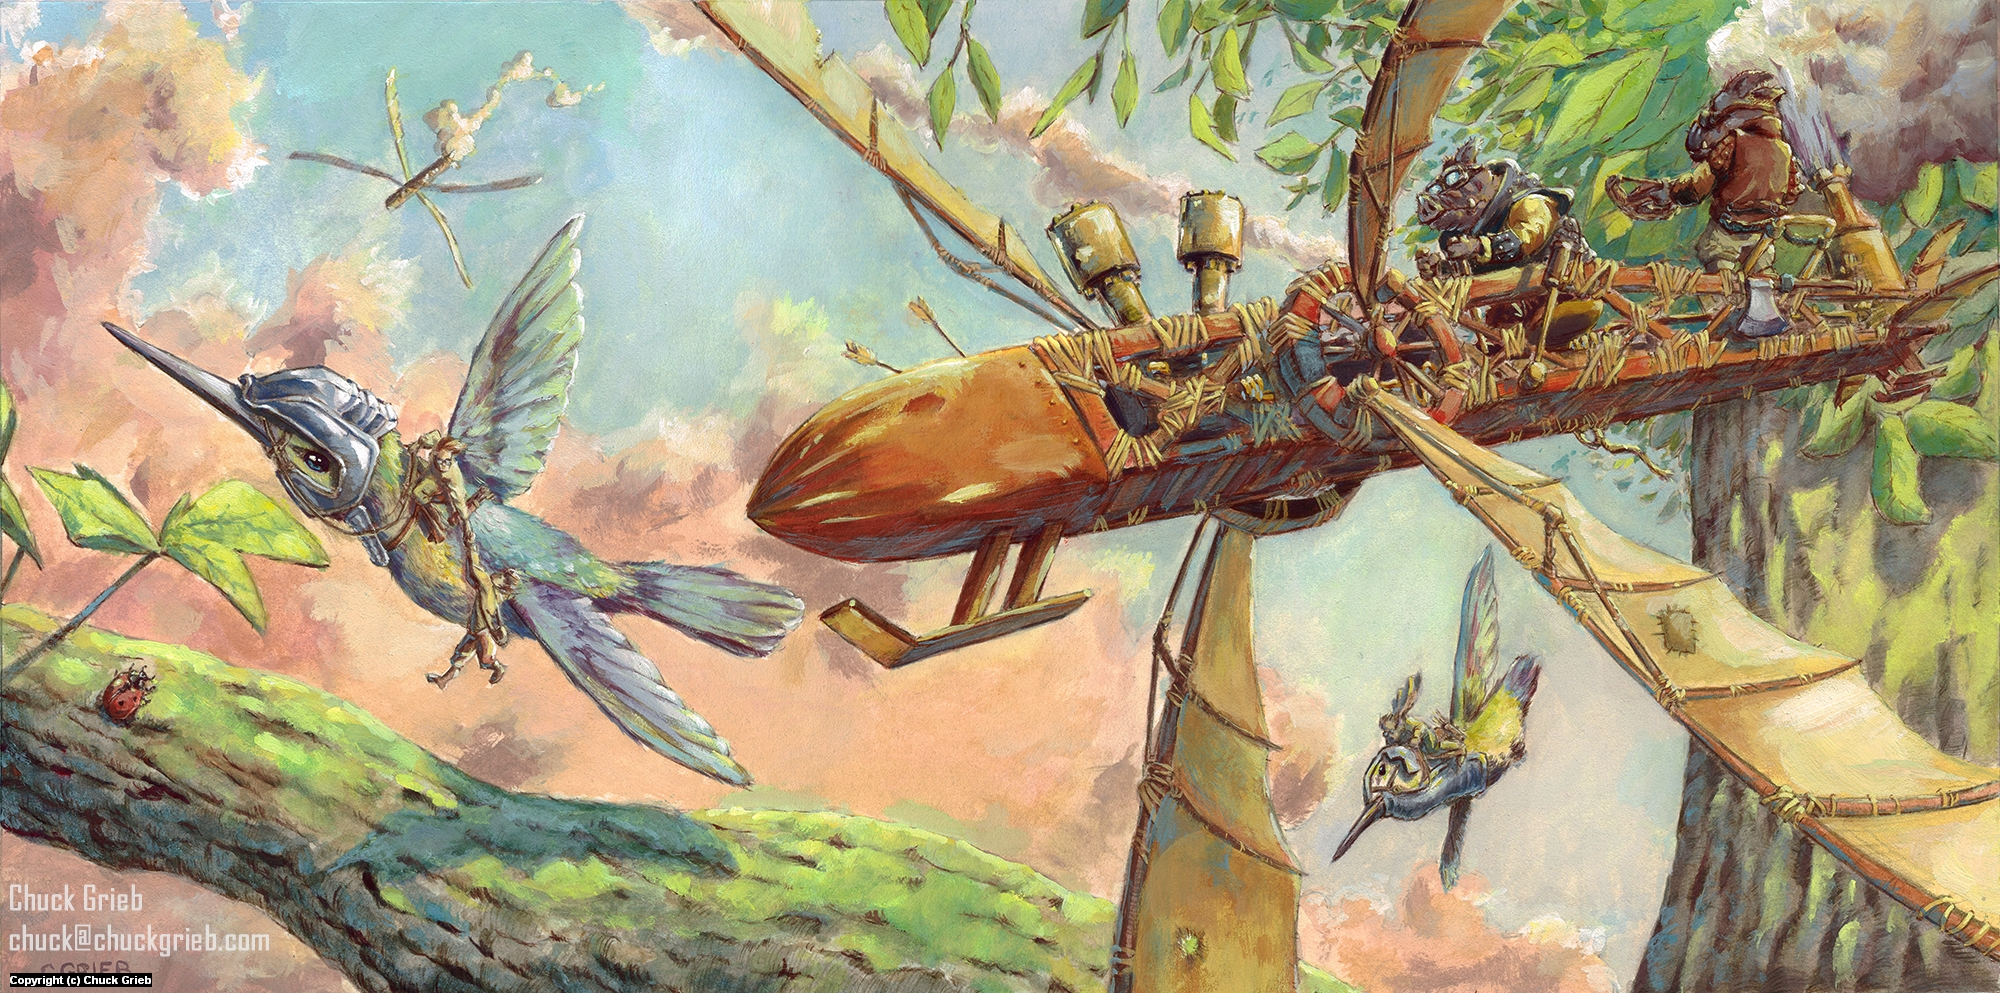 Dogfight Artwork by Chuck Grieb